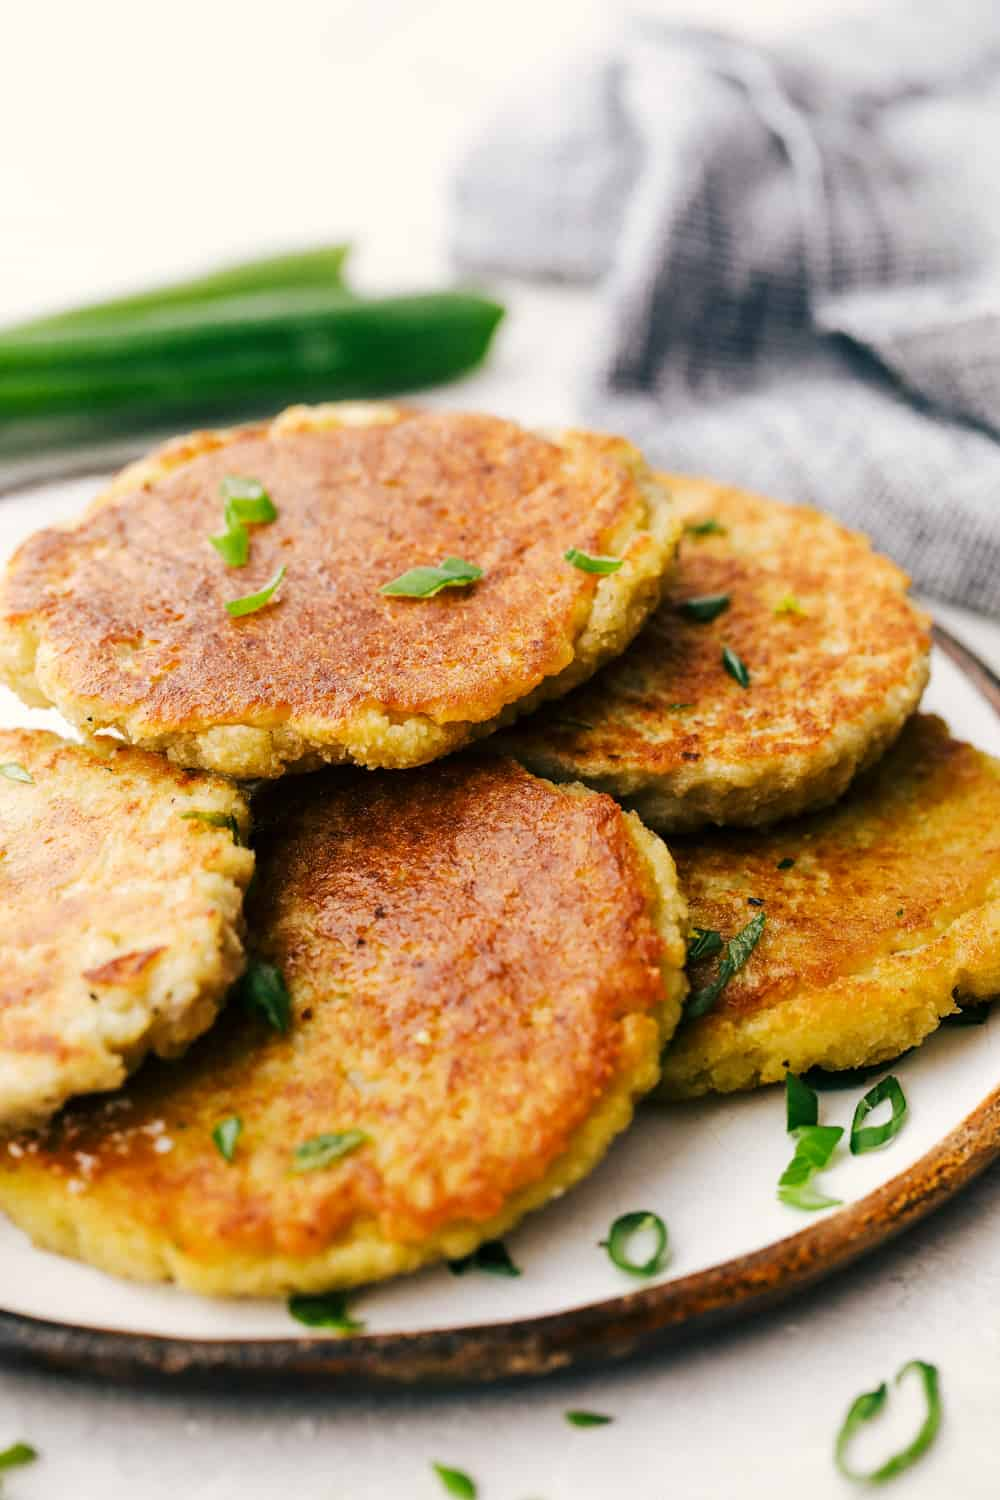 Potato pancakes with some garnish on a plate.